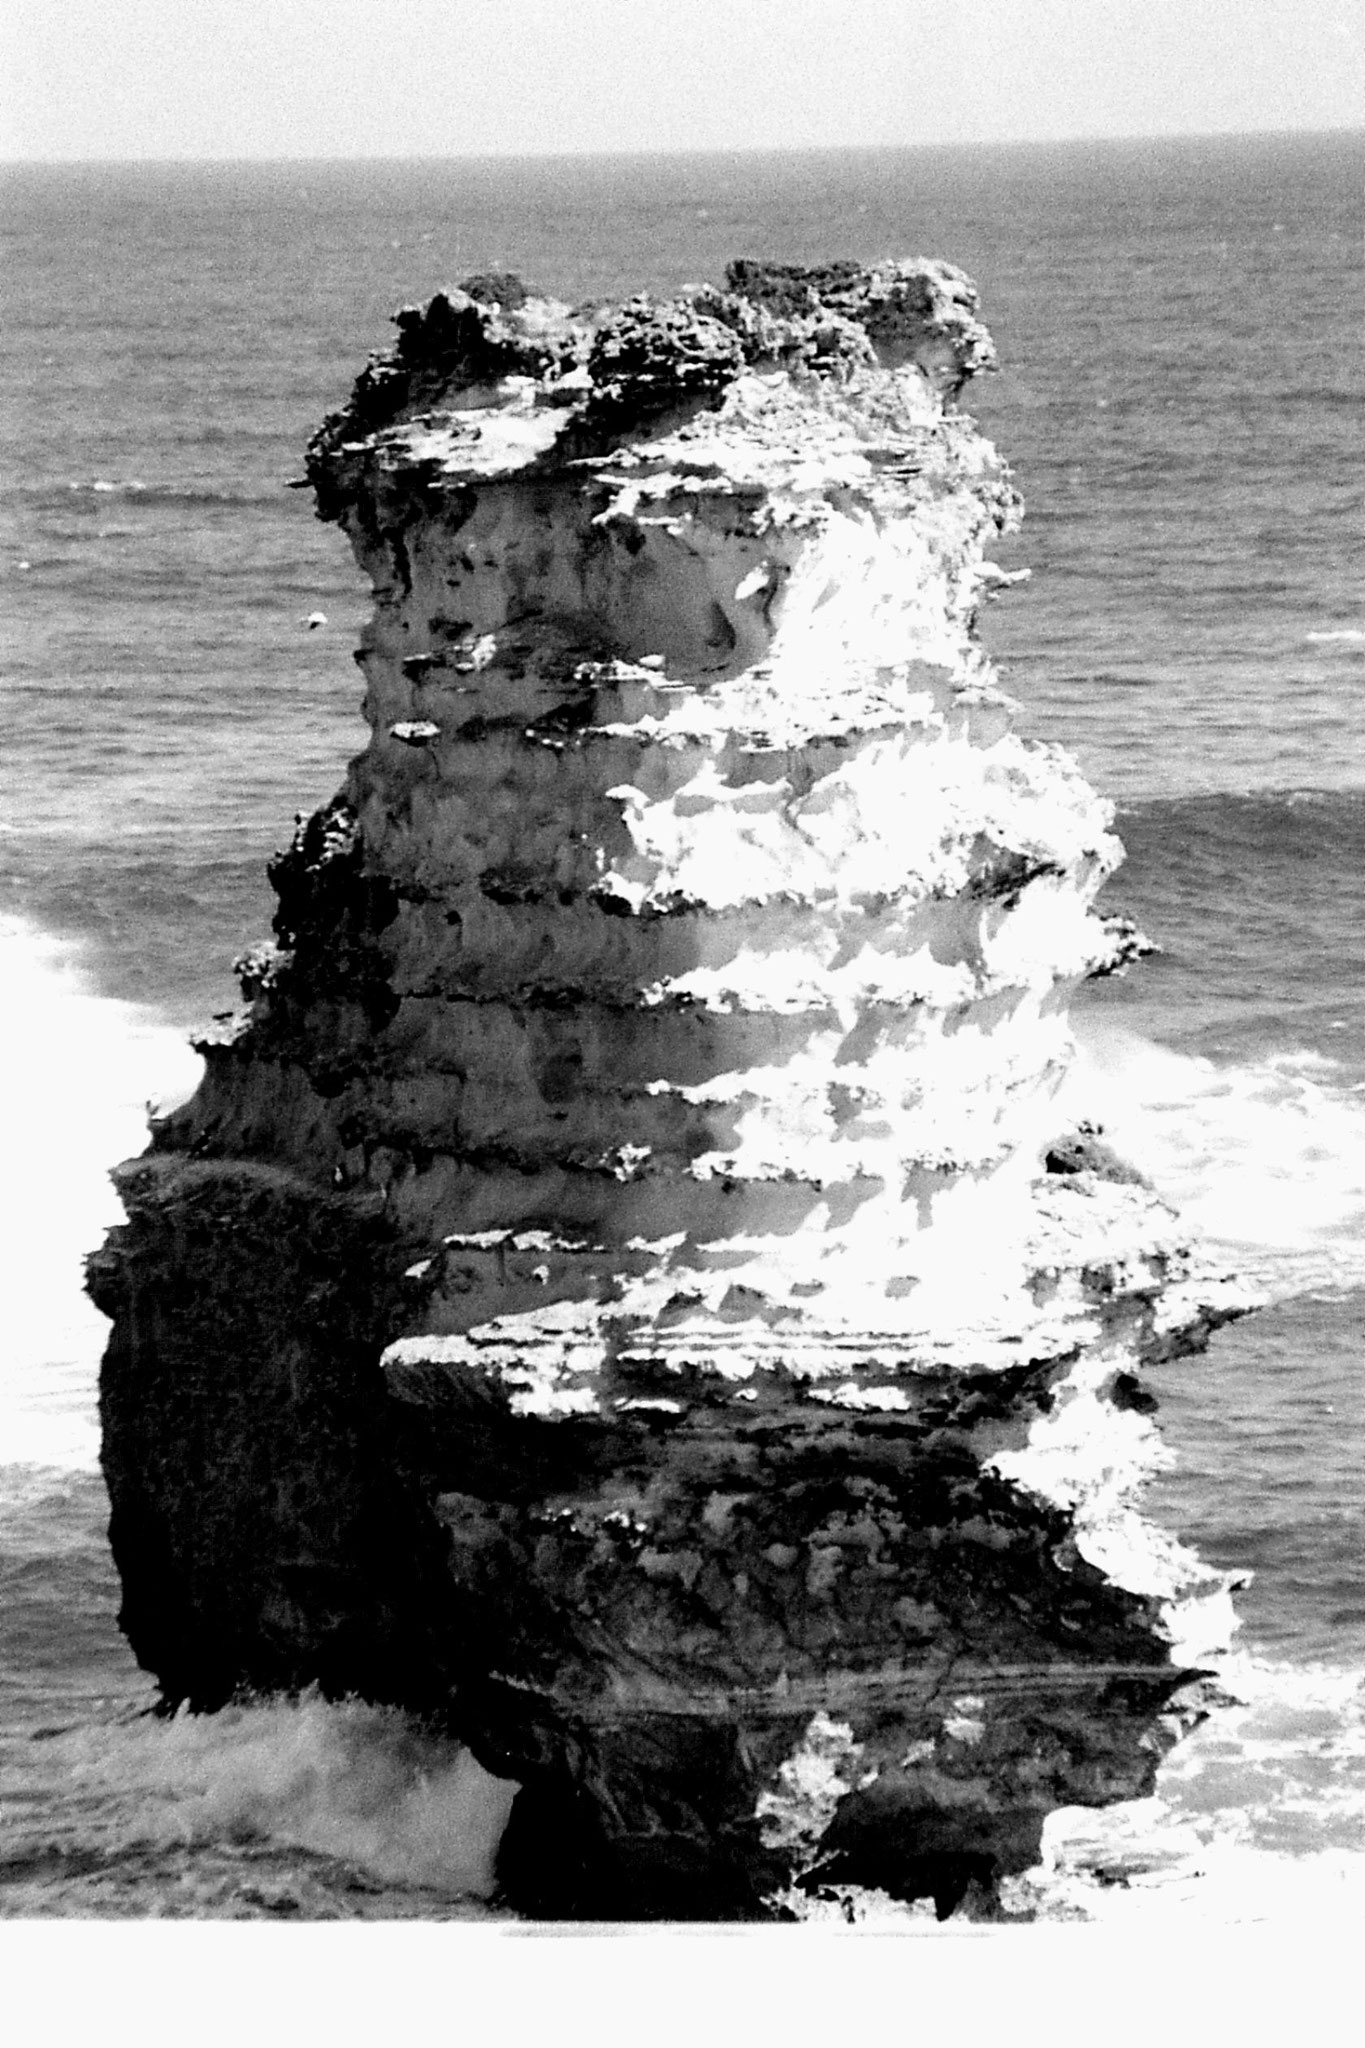 20/9/1990: 25: stack at Bay of Islands